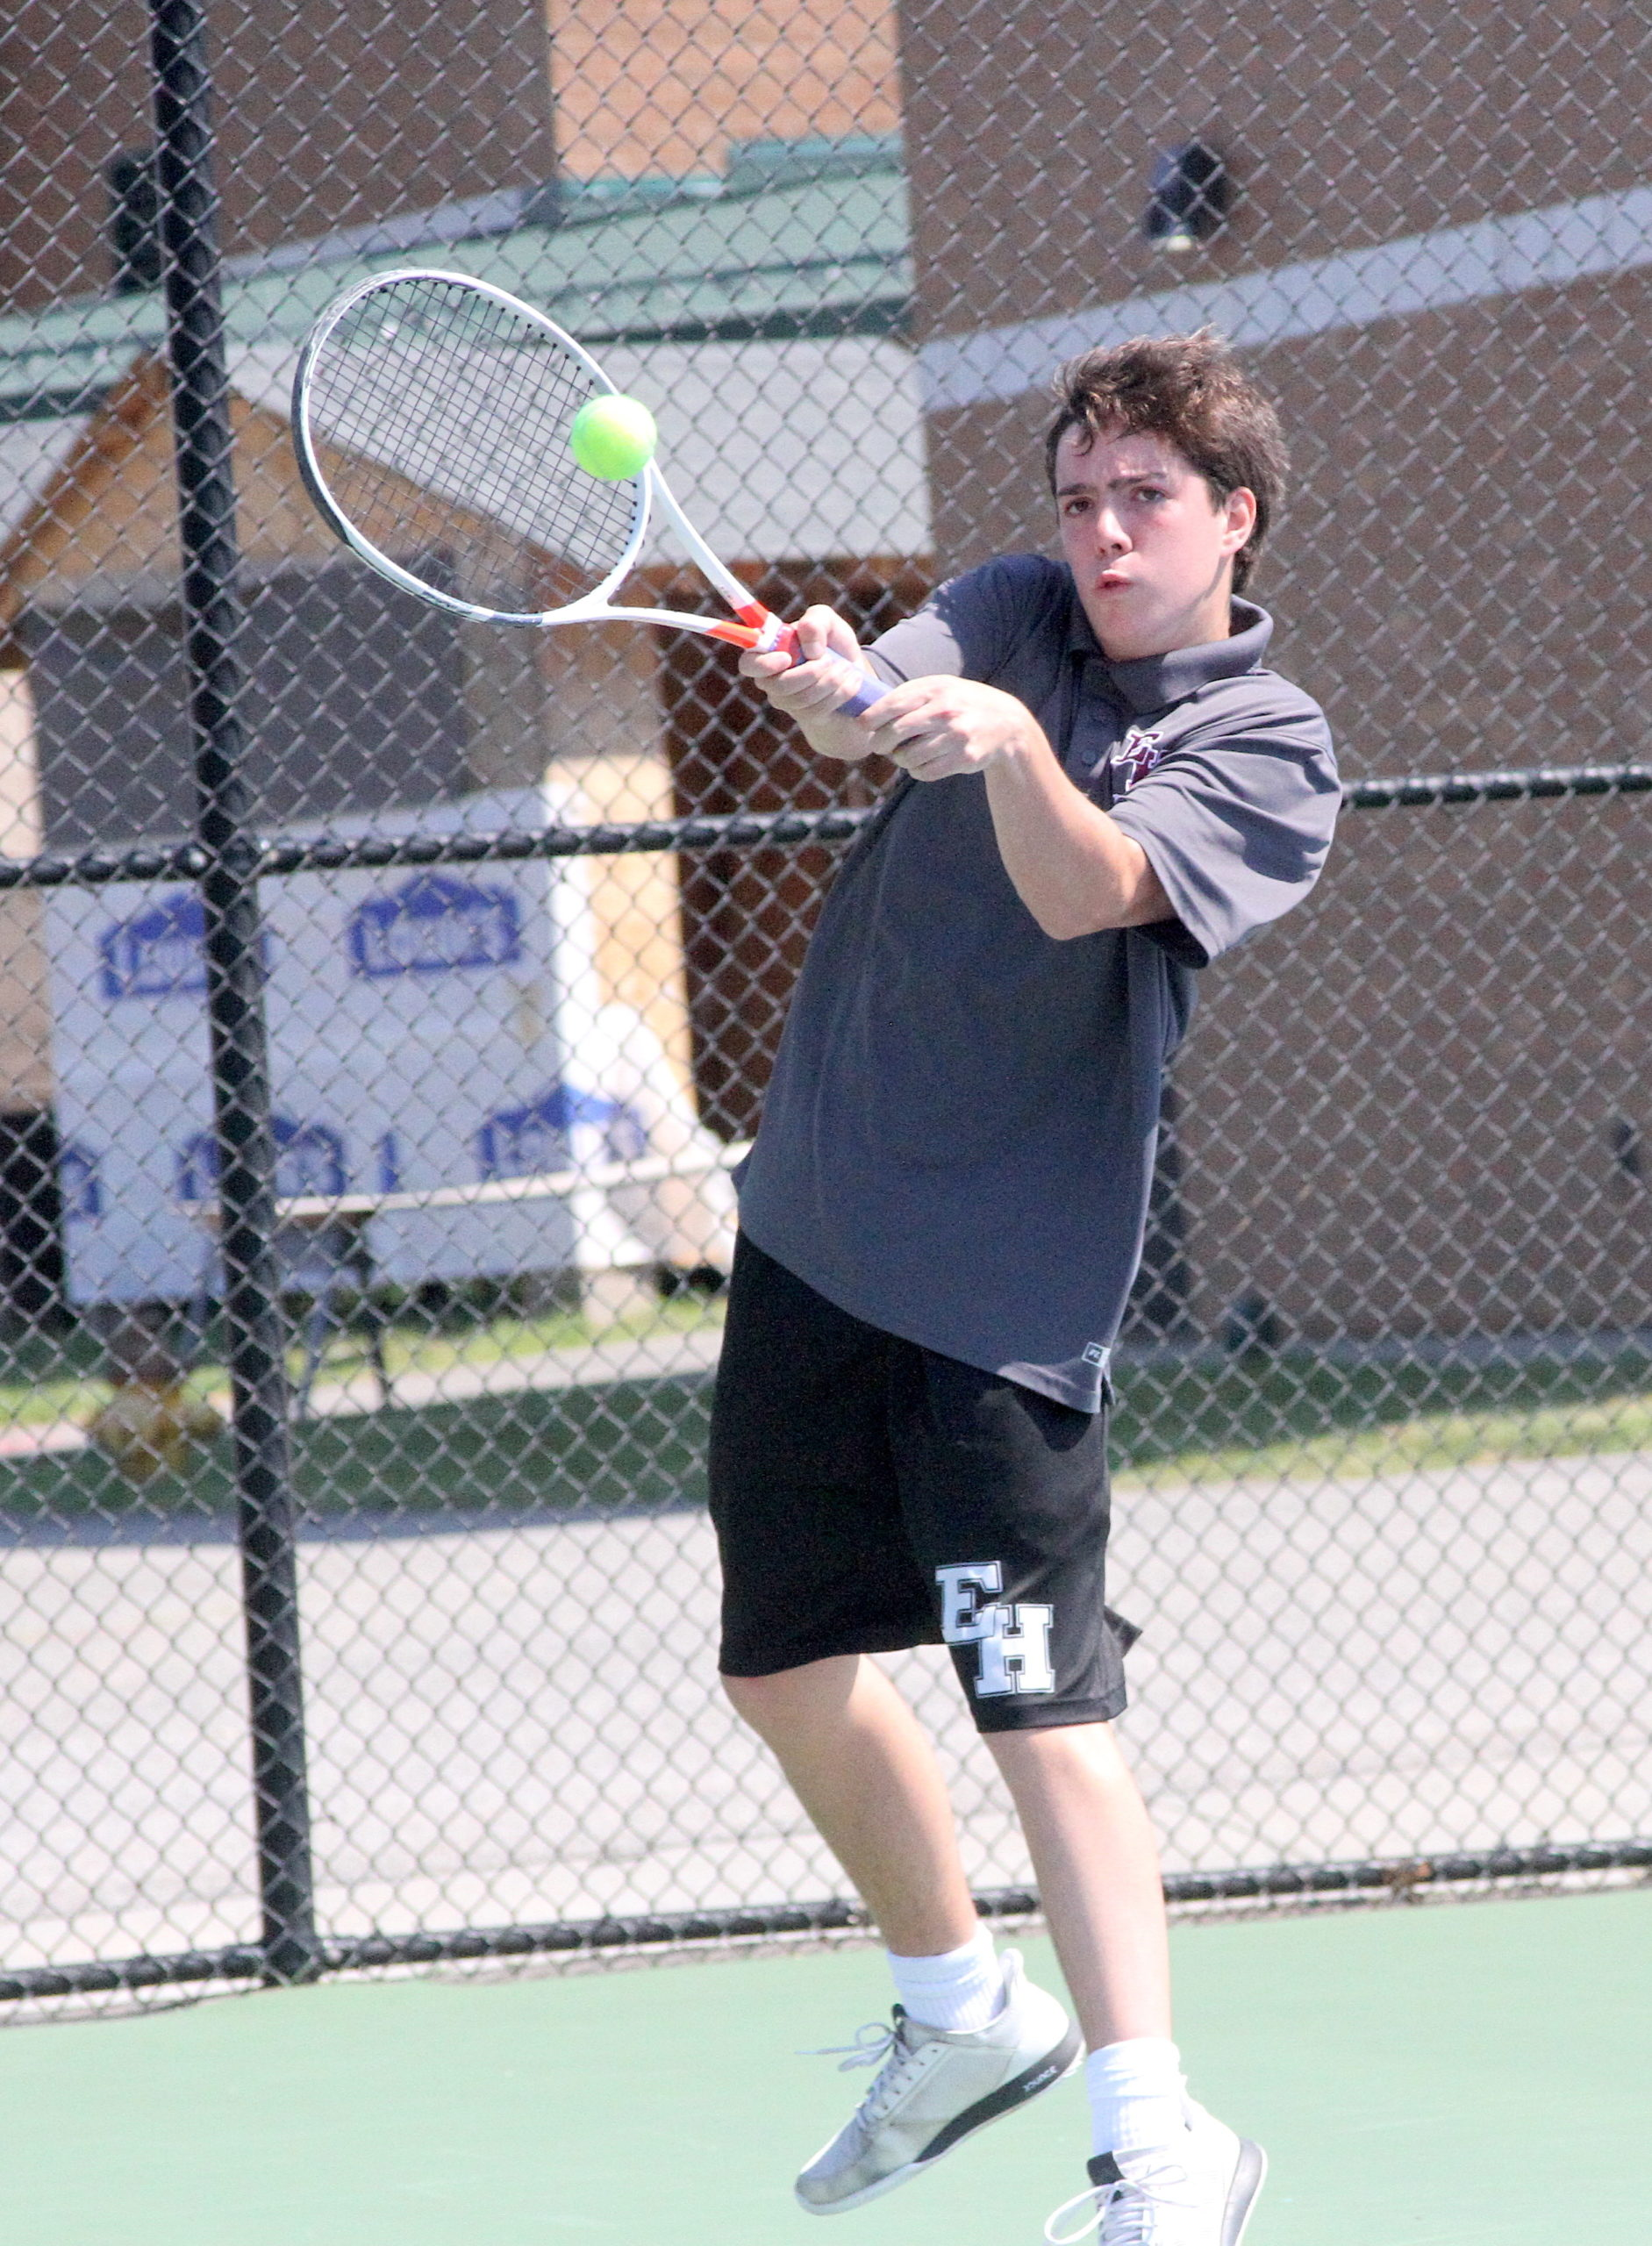 East Hampton freshman Nick Cooper connects with the ball during his Division IV quarterfinals match. DESIRÉE KEEGAN